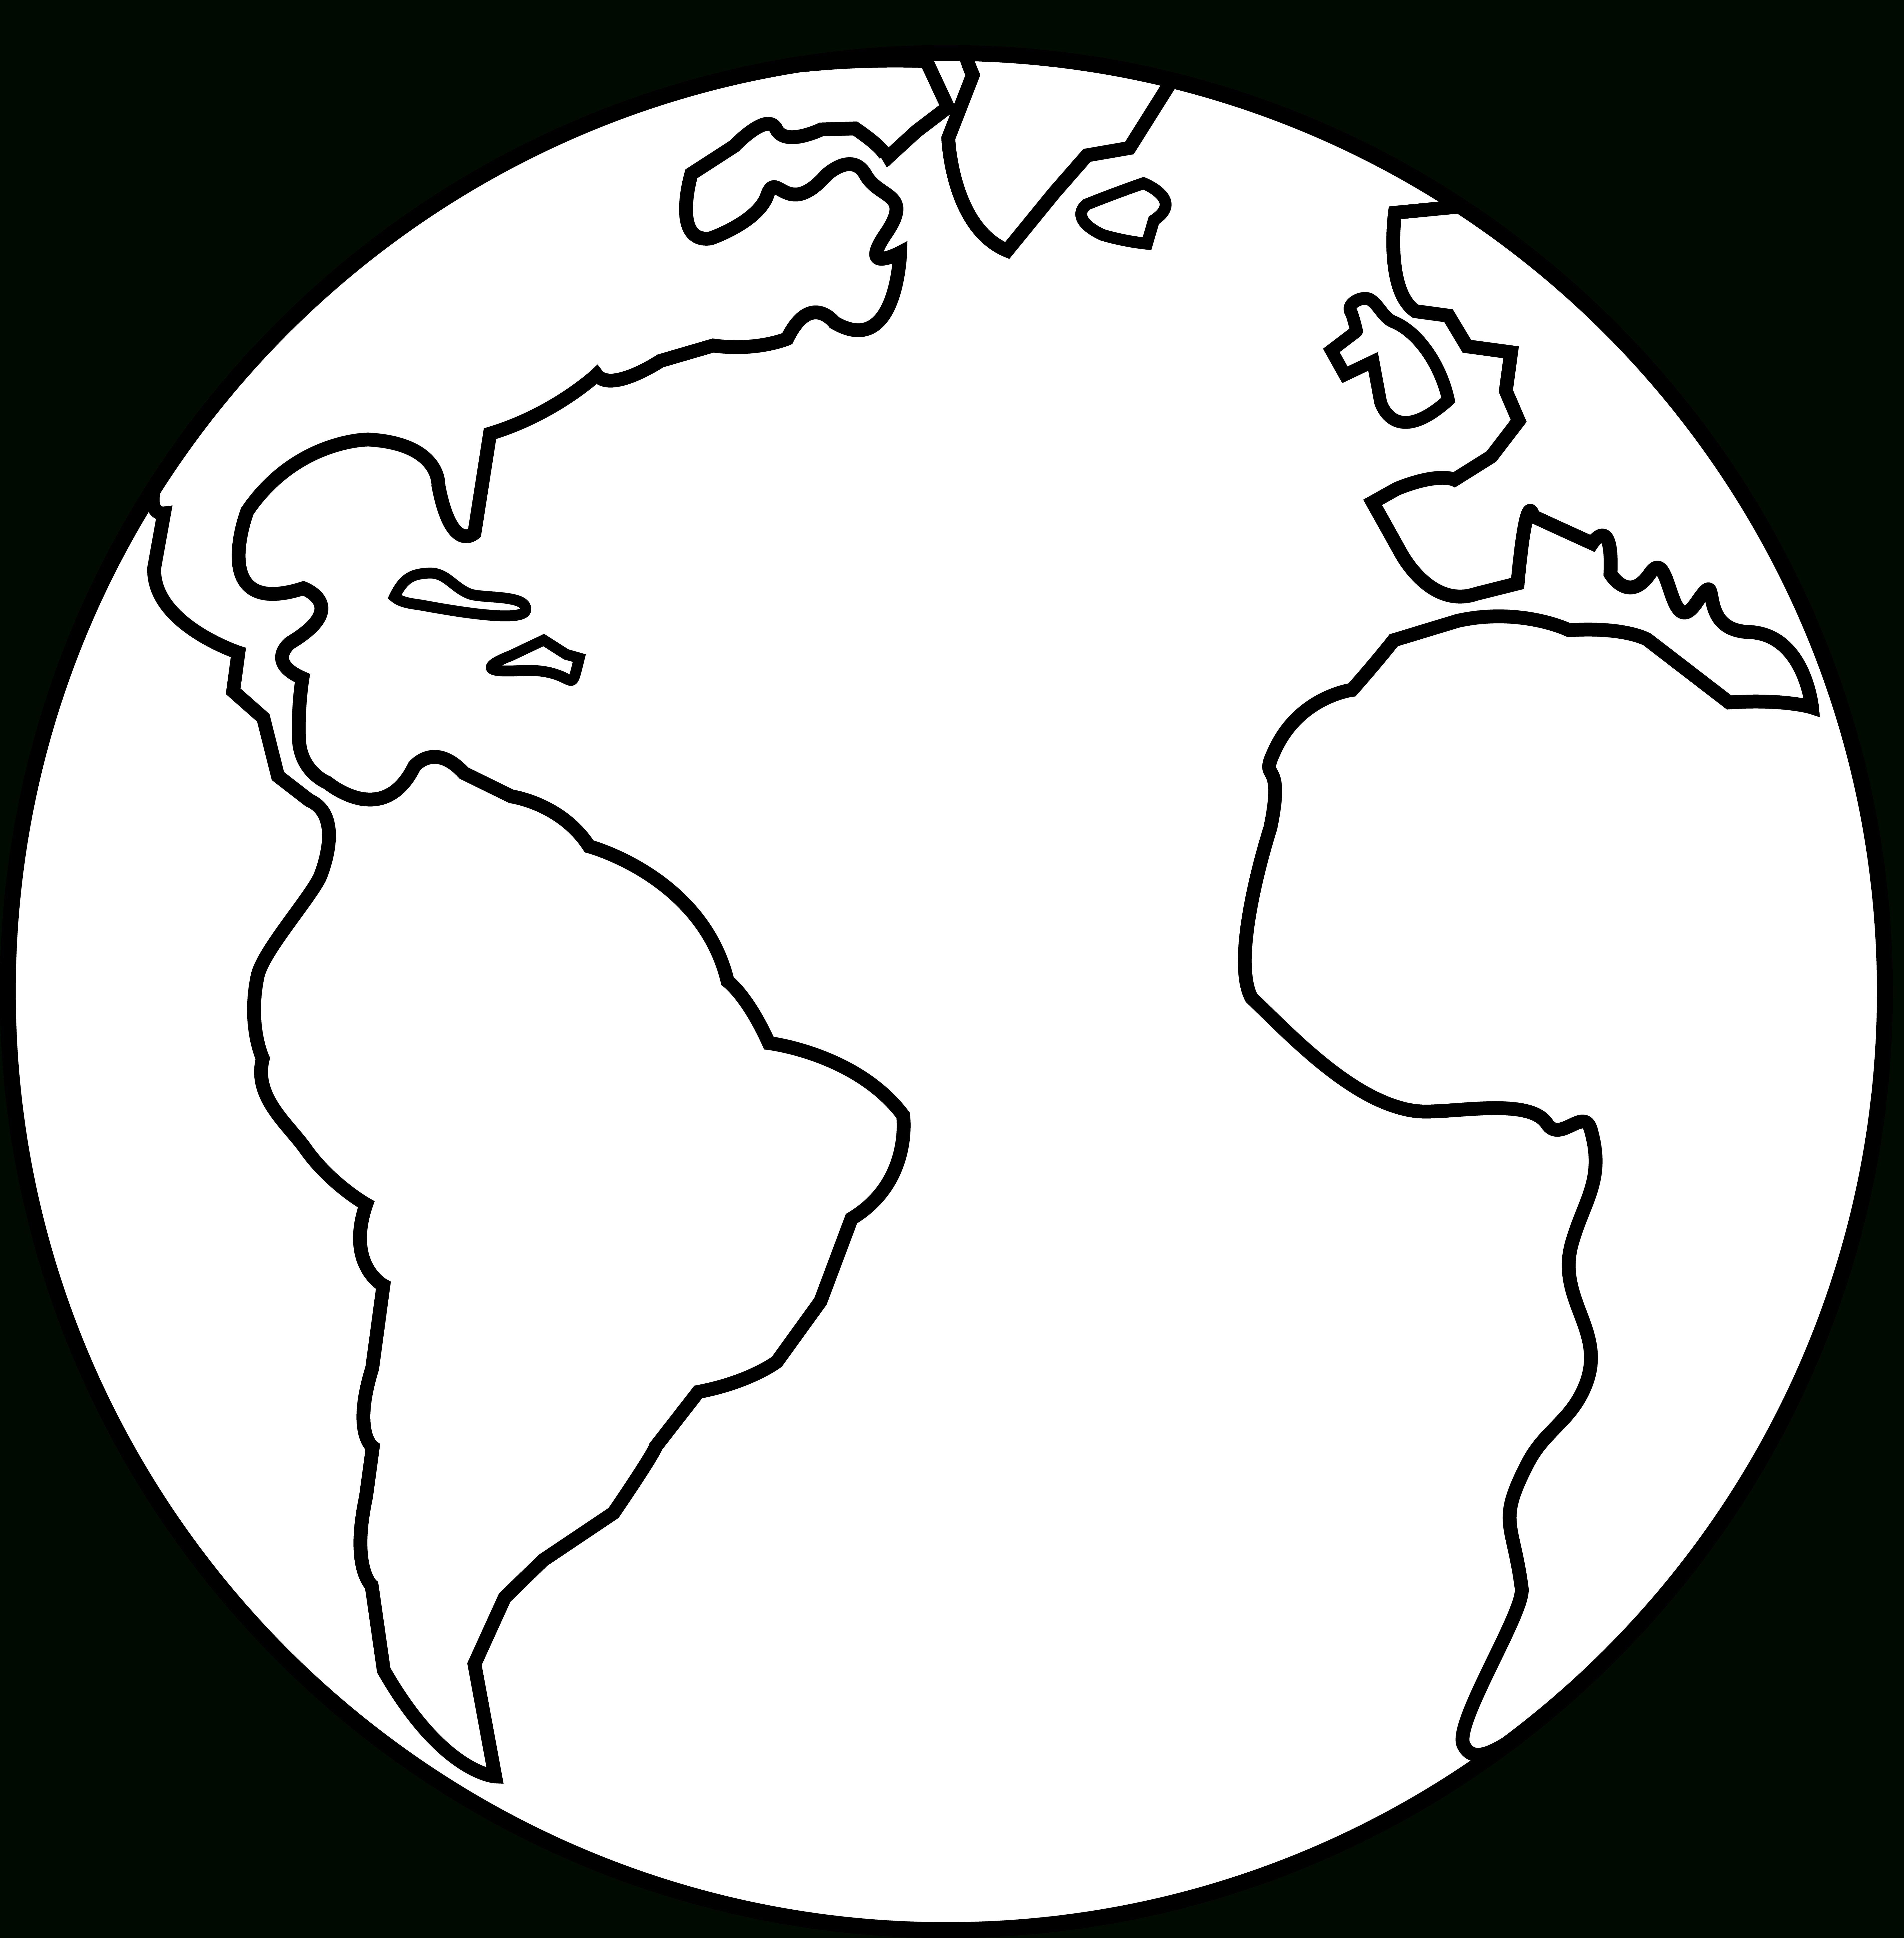 Planets clipart simple. Drawing of earth planet